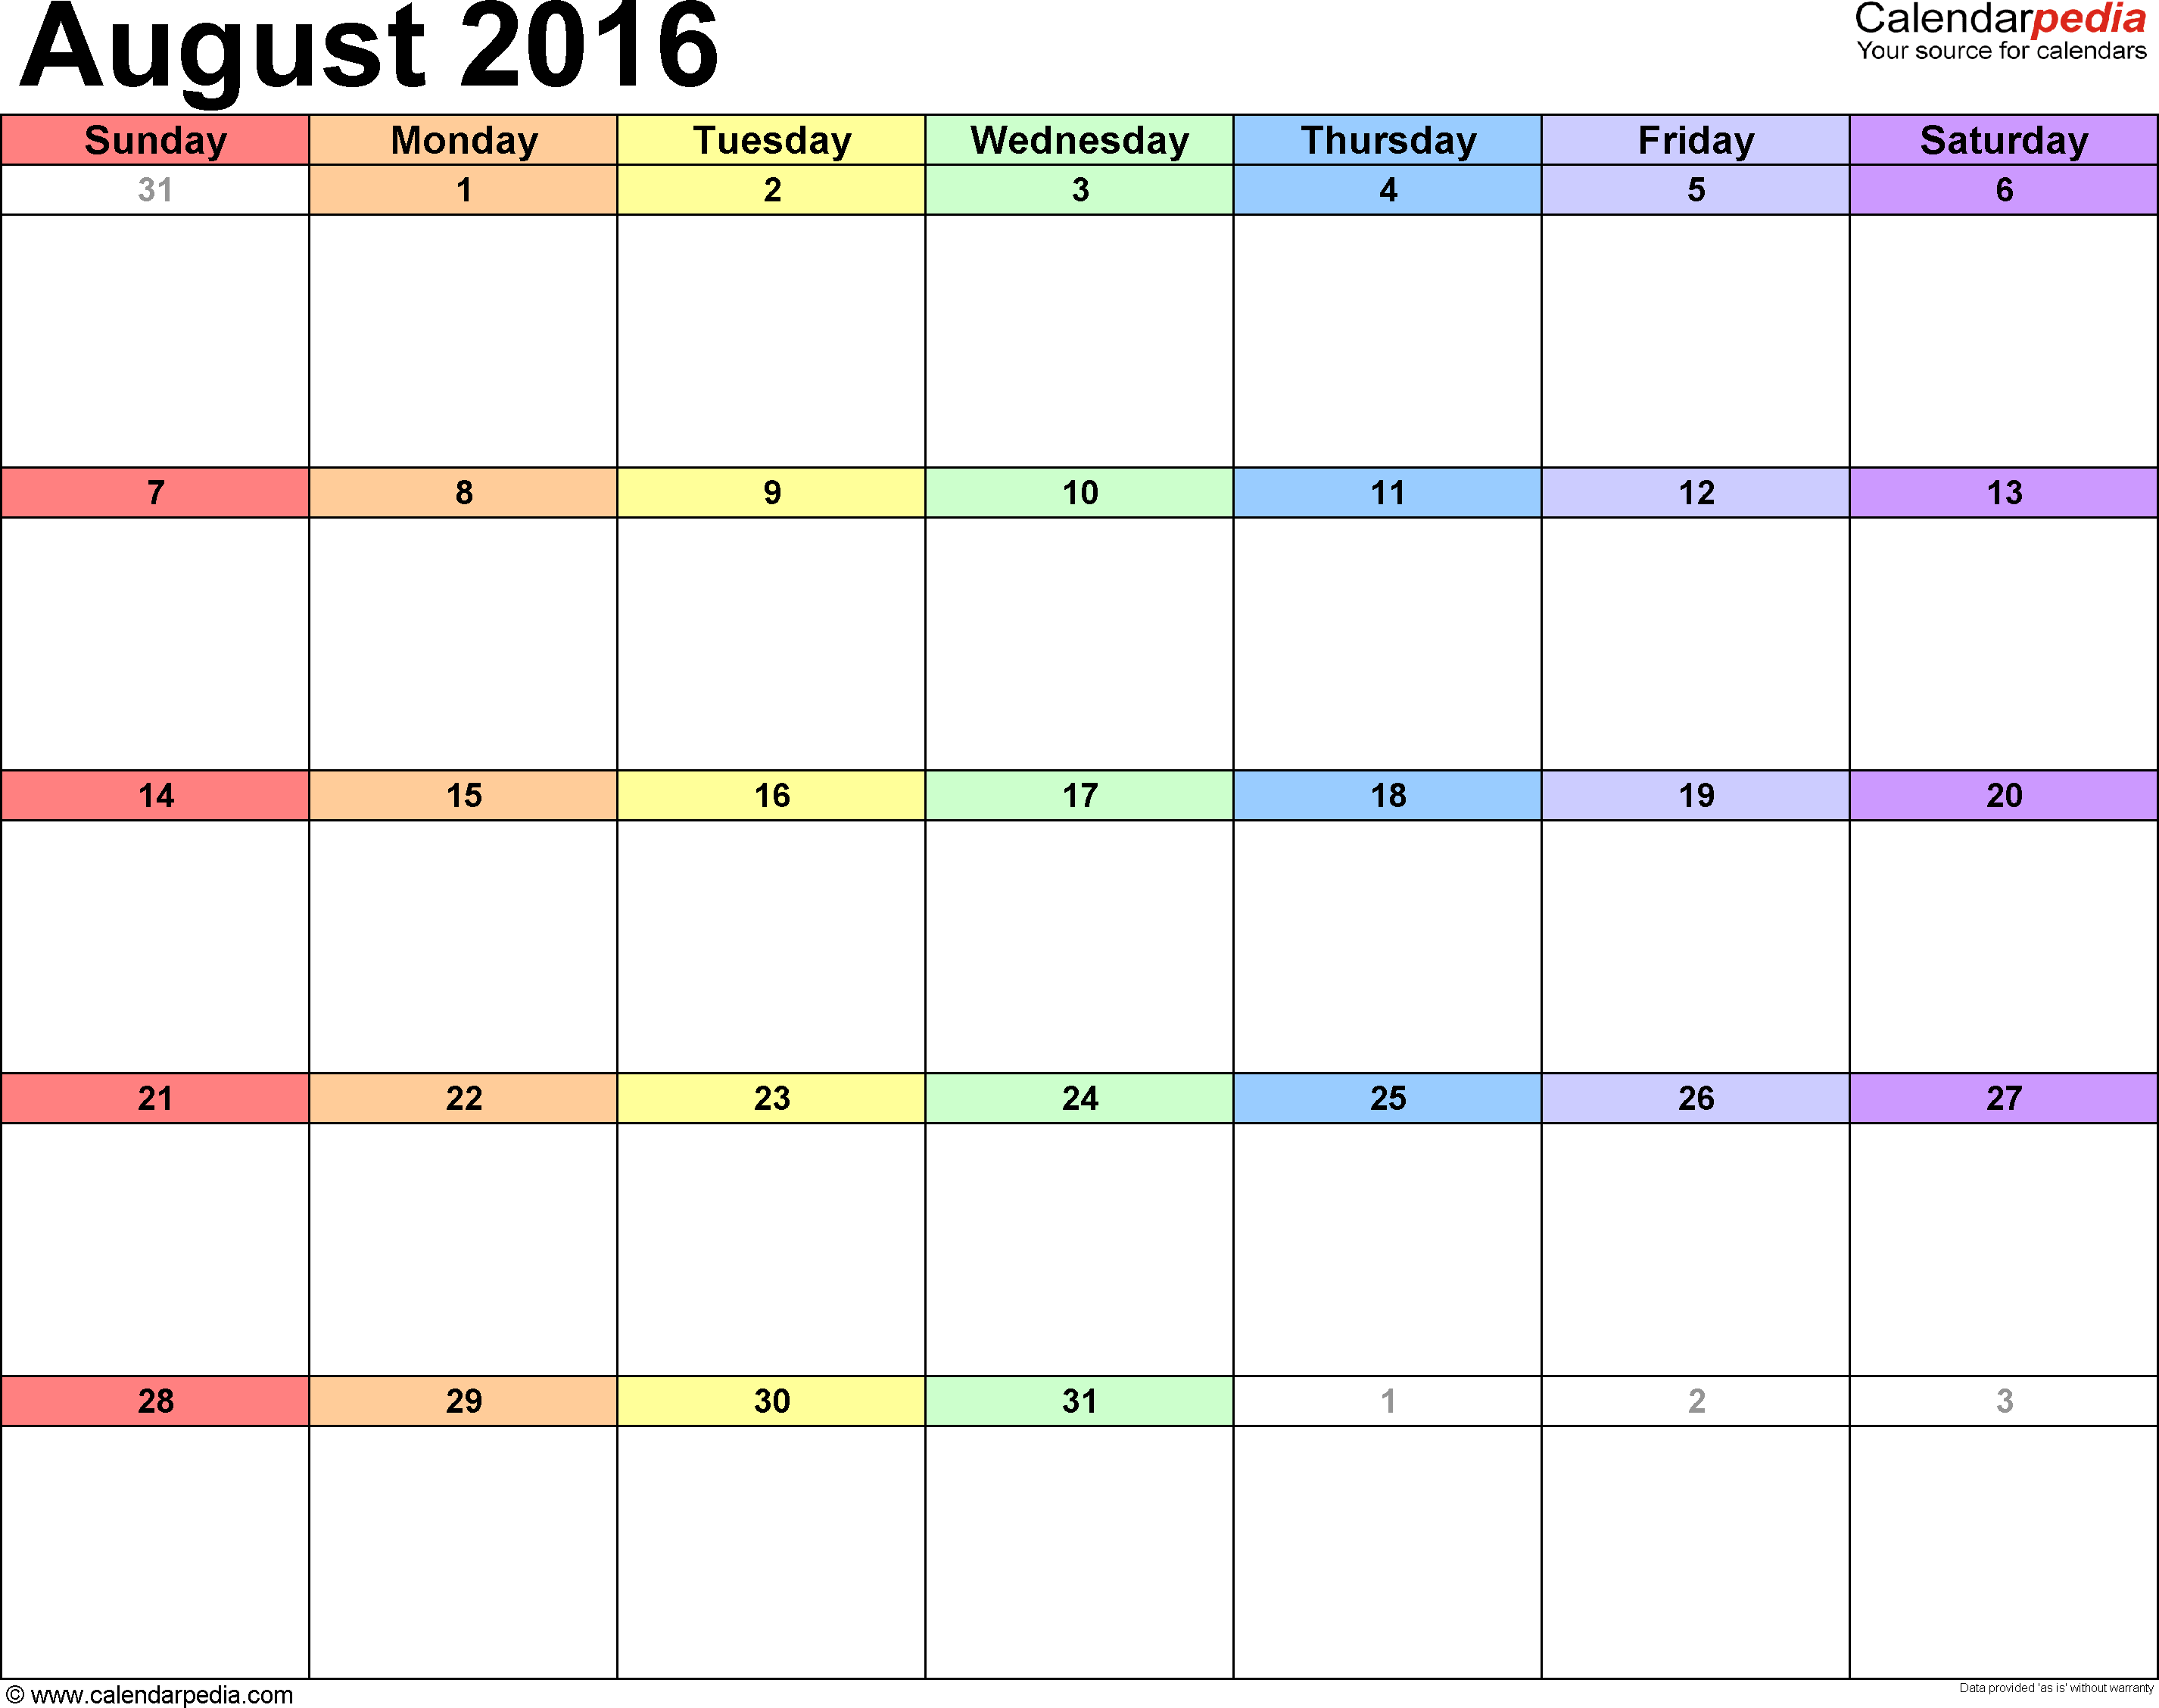 August 2016 Calendars for Word, Excel & PDF